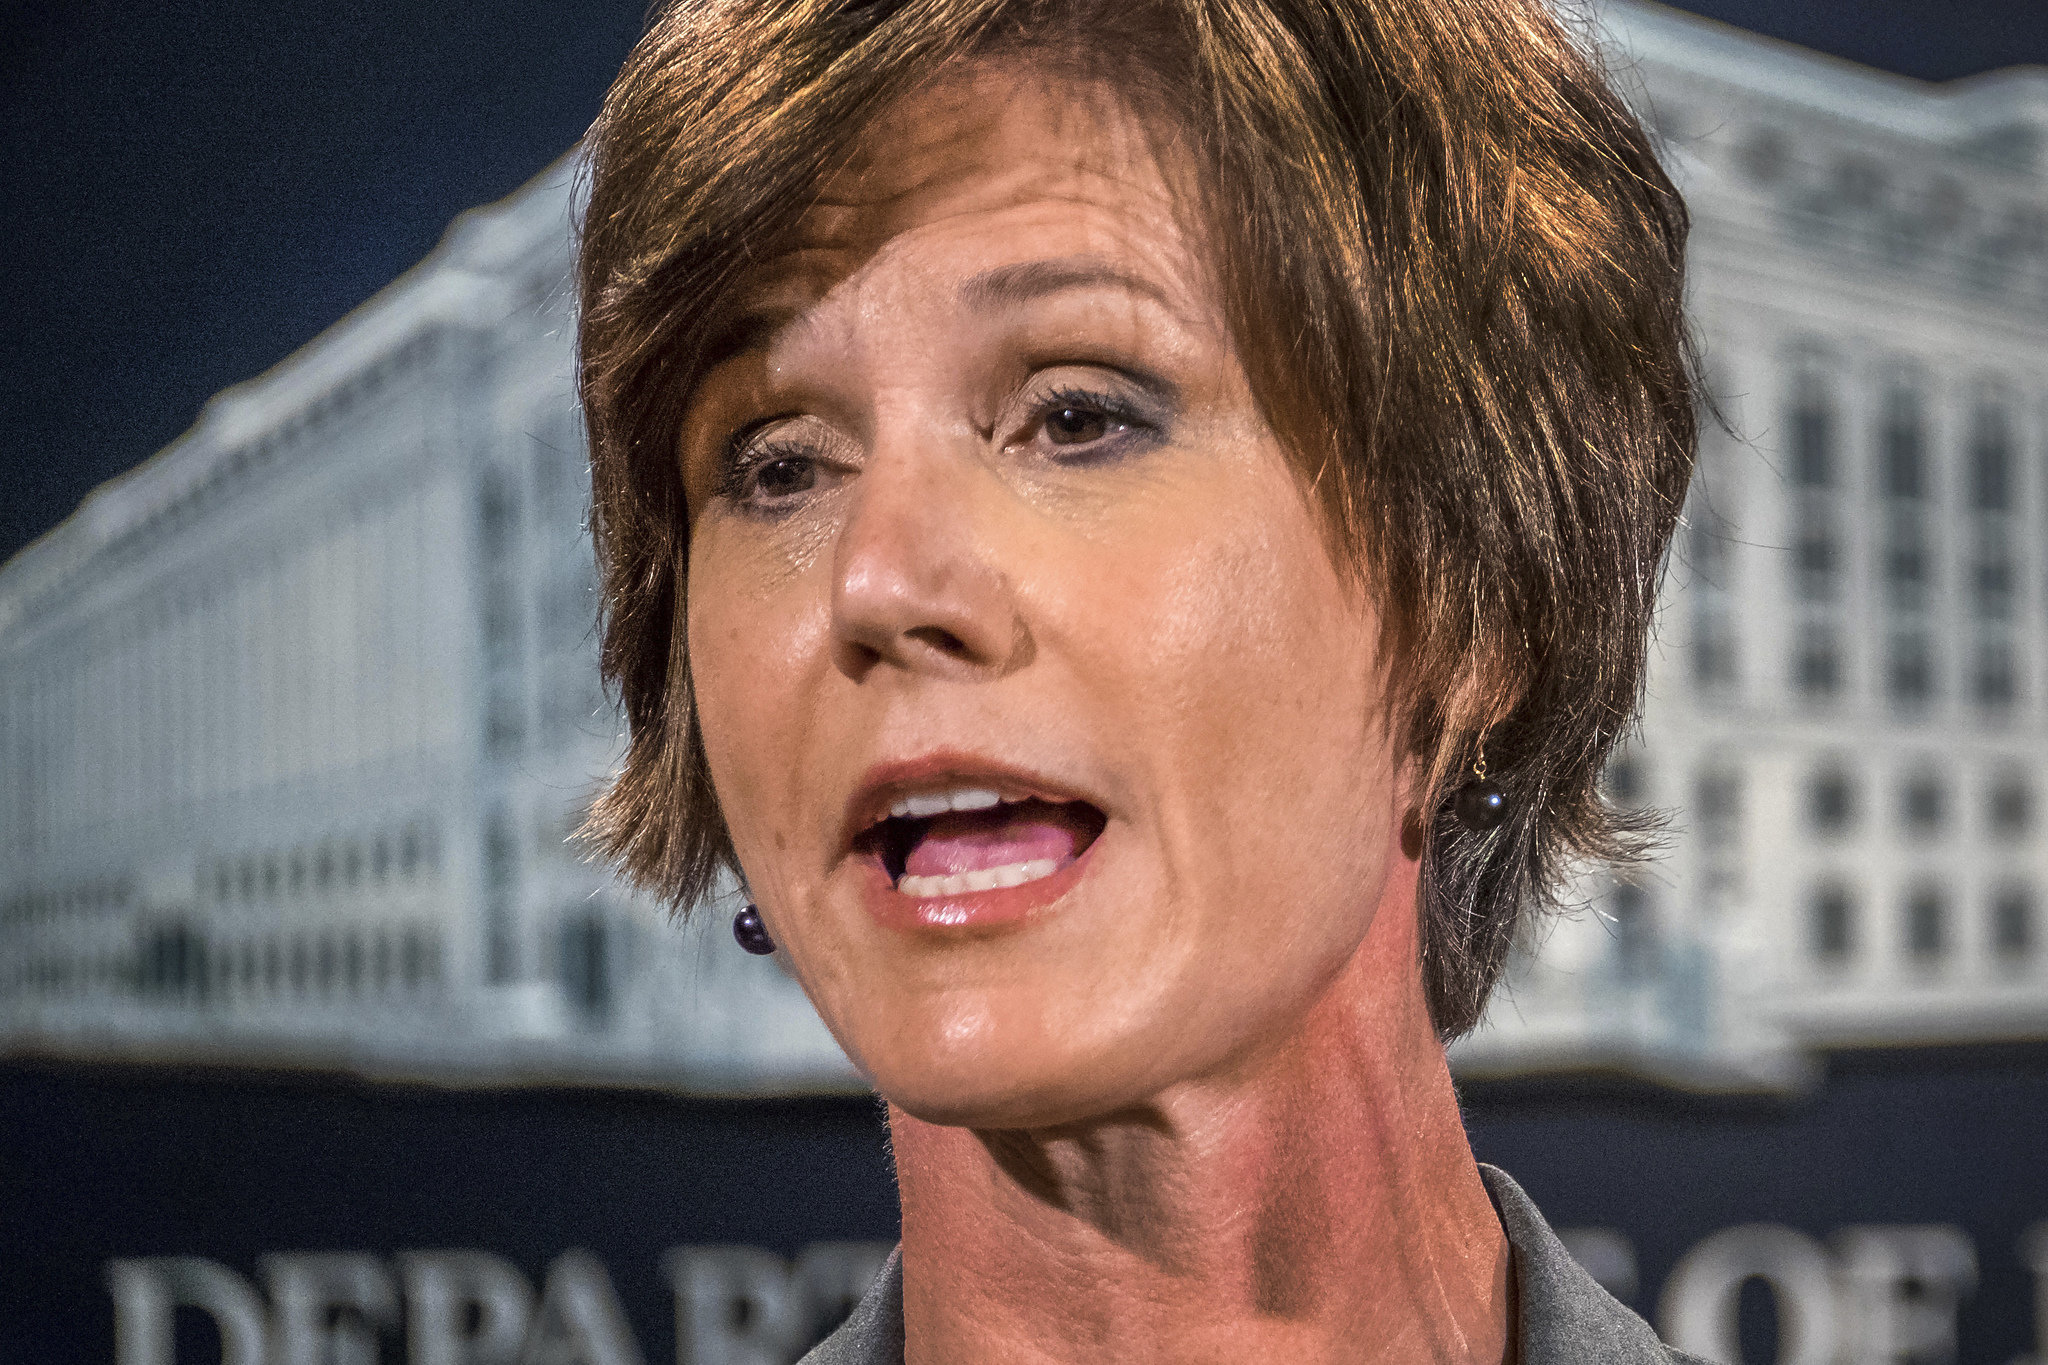 Trump fires acting Attorney General who defied him on immigration